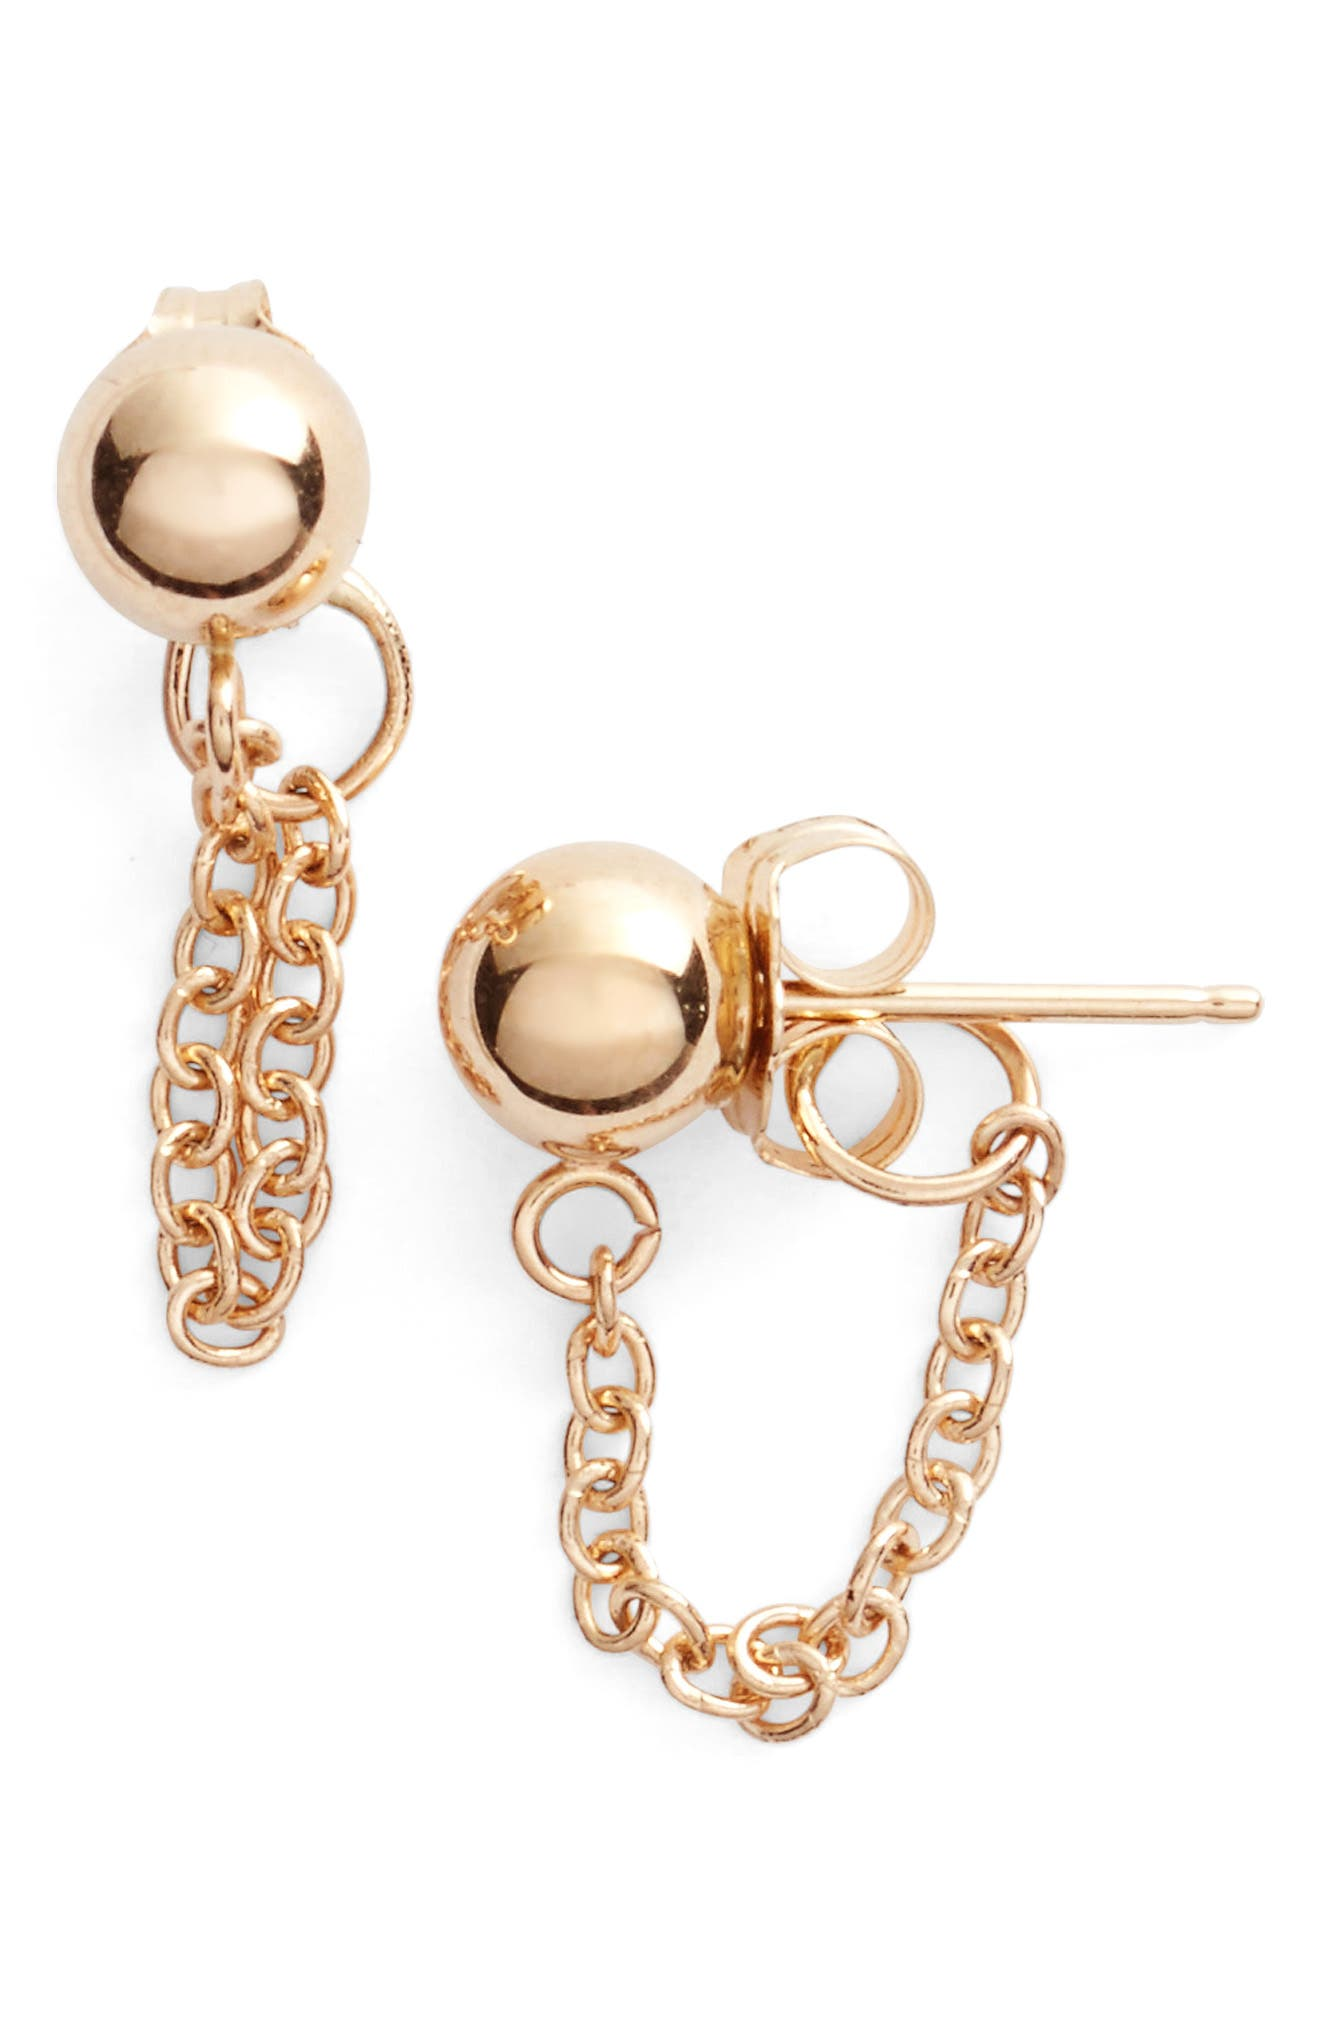 Gold Ball Chain Earrings,                         Main,                         color, Yellow Gold/ White Pearl